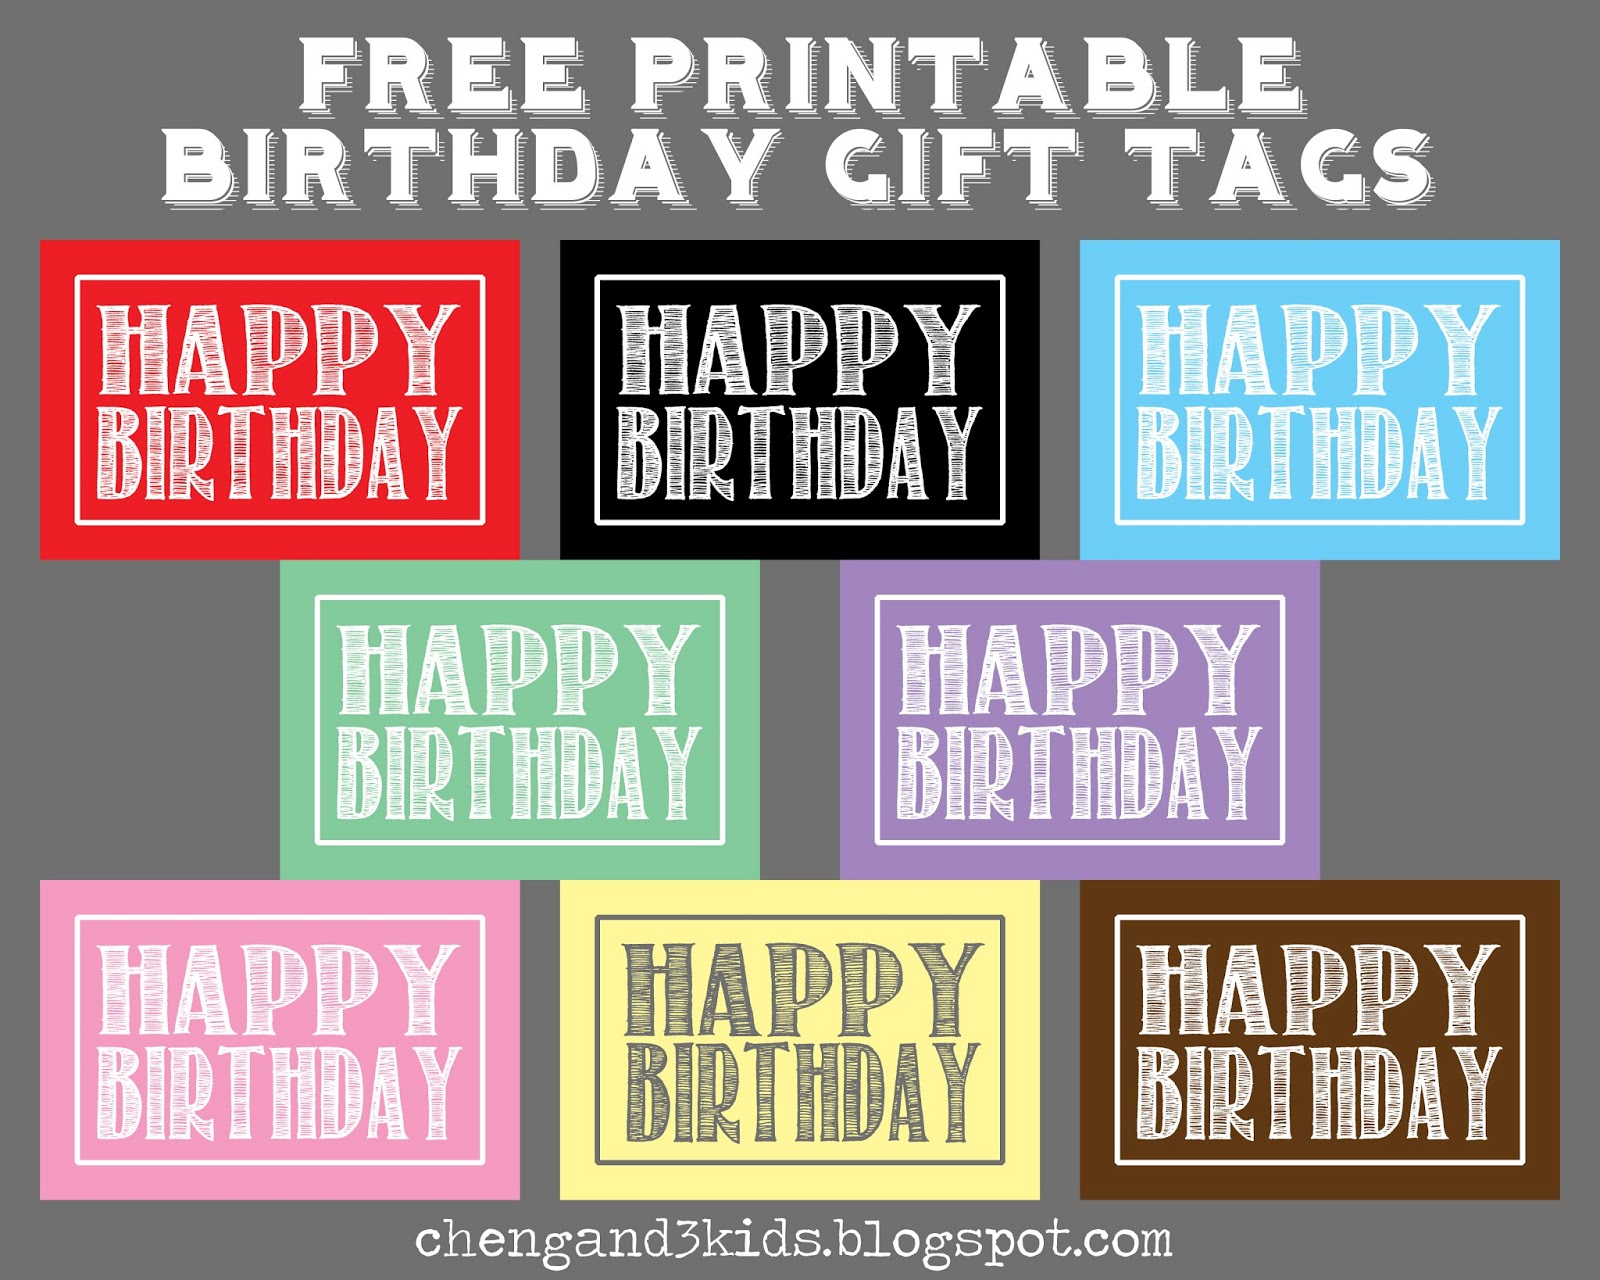 Cheng and 3 kids free printable birthday gift tags free printable birthday gift tags negle Choice Image